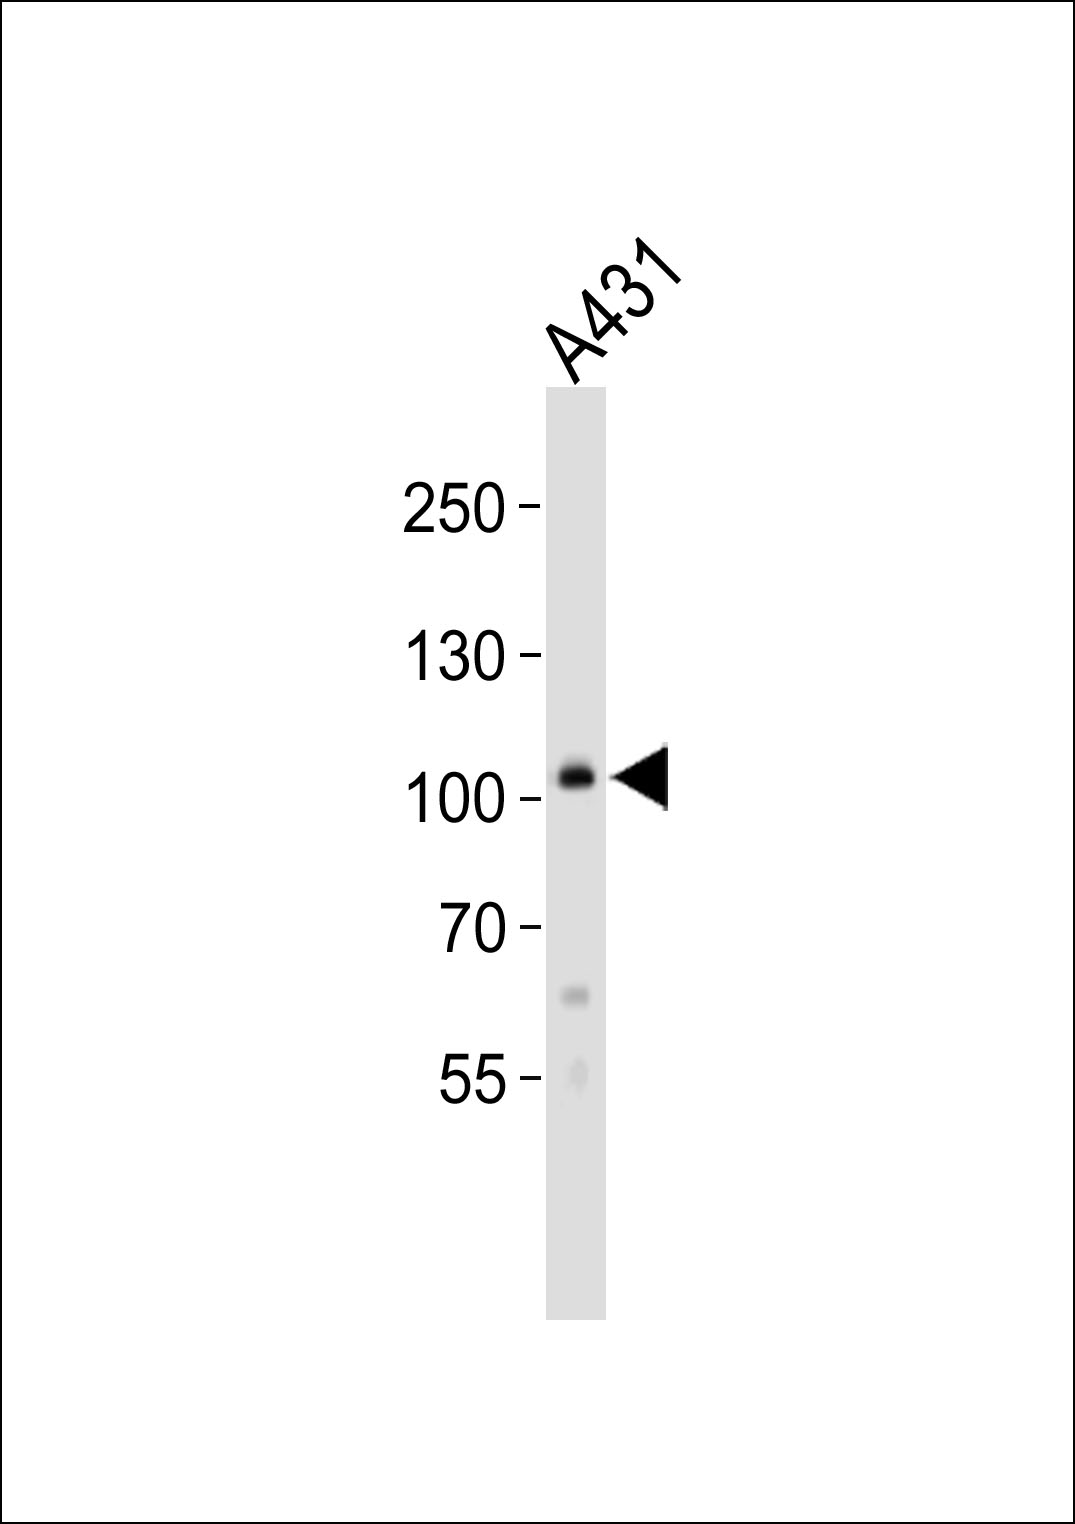 Western blot of lysate from A431 cell line, using COL6A1 Antibody. Antibody was diluted at 1:1000. A goat anti-rabbit IgG H&L (HRP) at 1:10000 dilution was used as the secondary antibody. Lysate at 20ug.